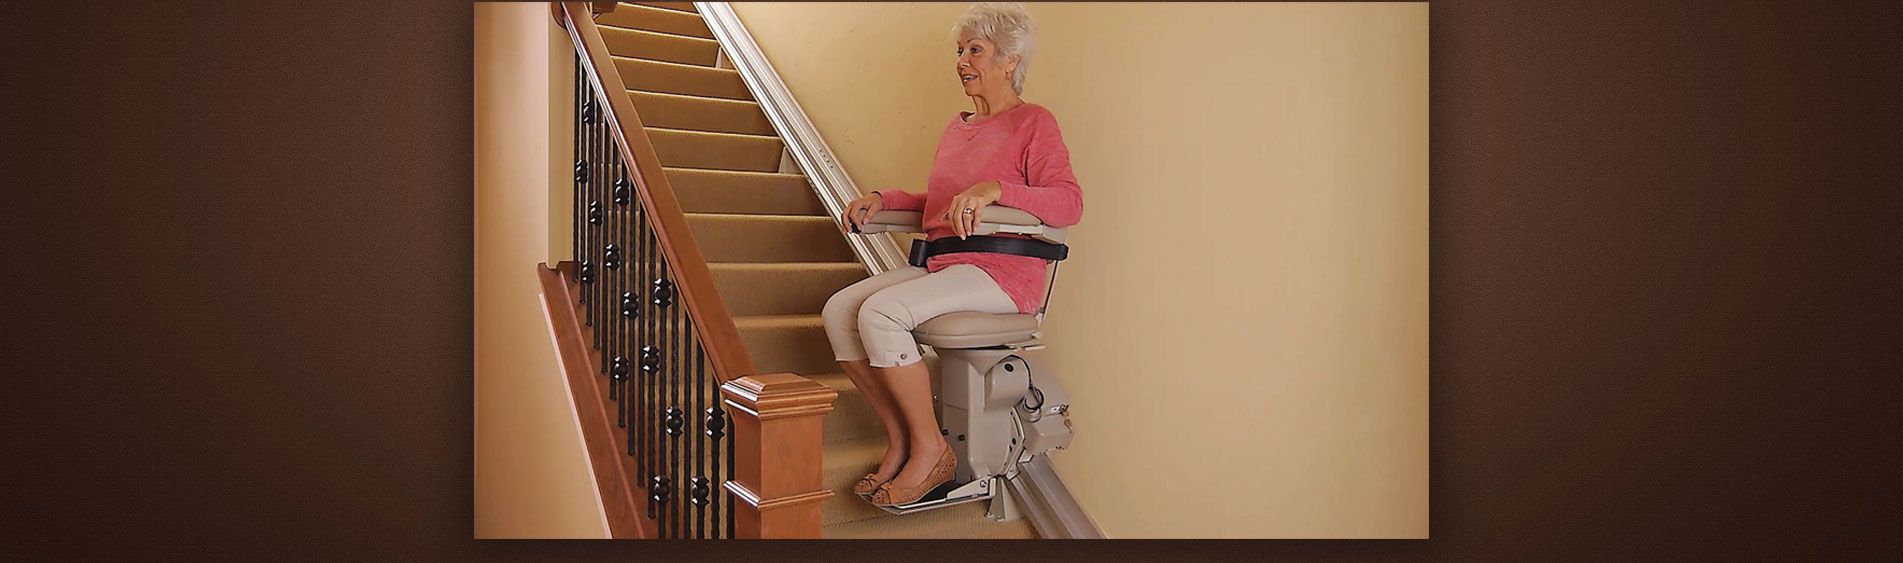 Stairlifts at EJ Medical Supply